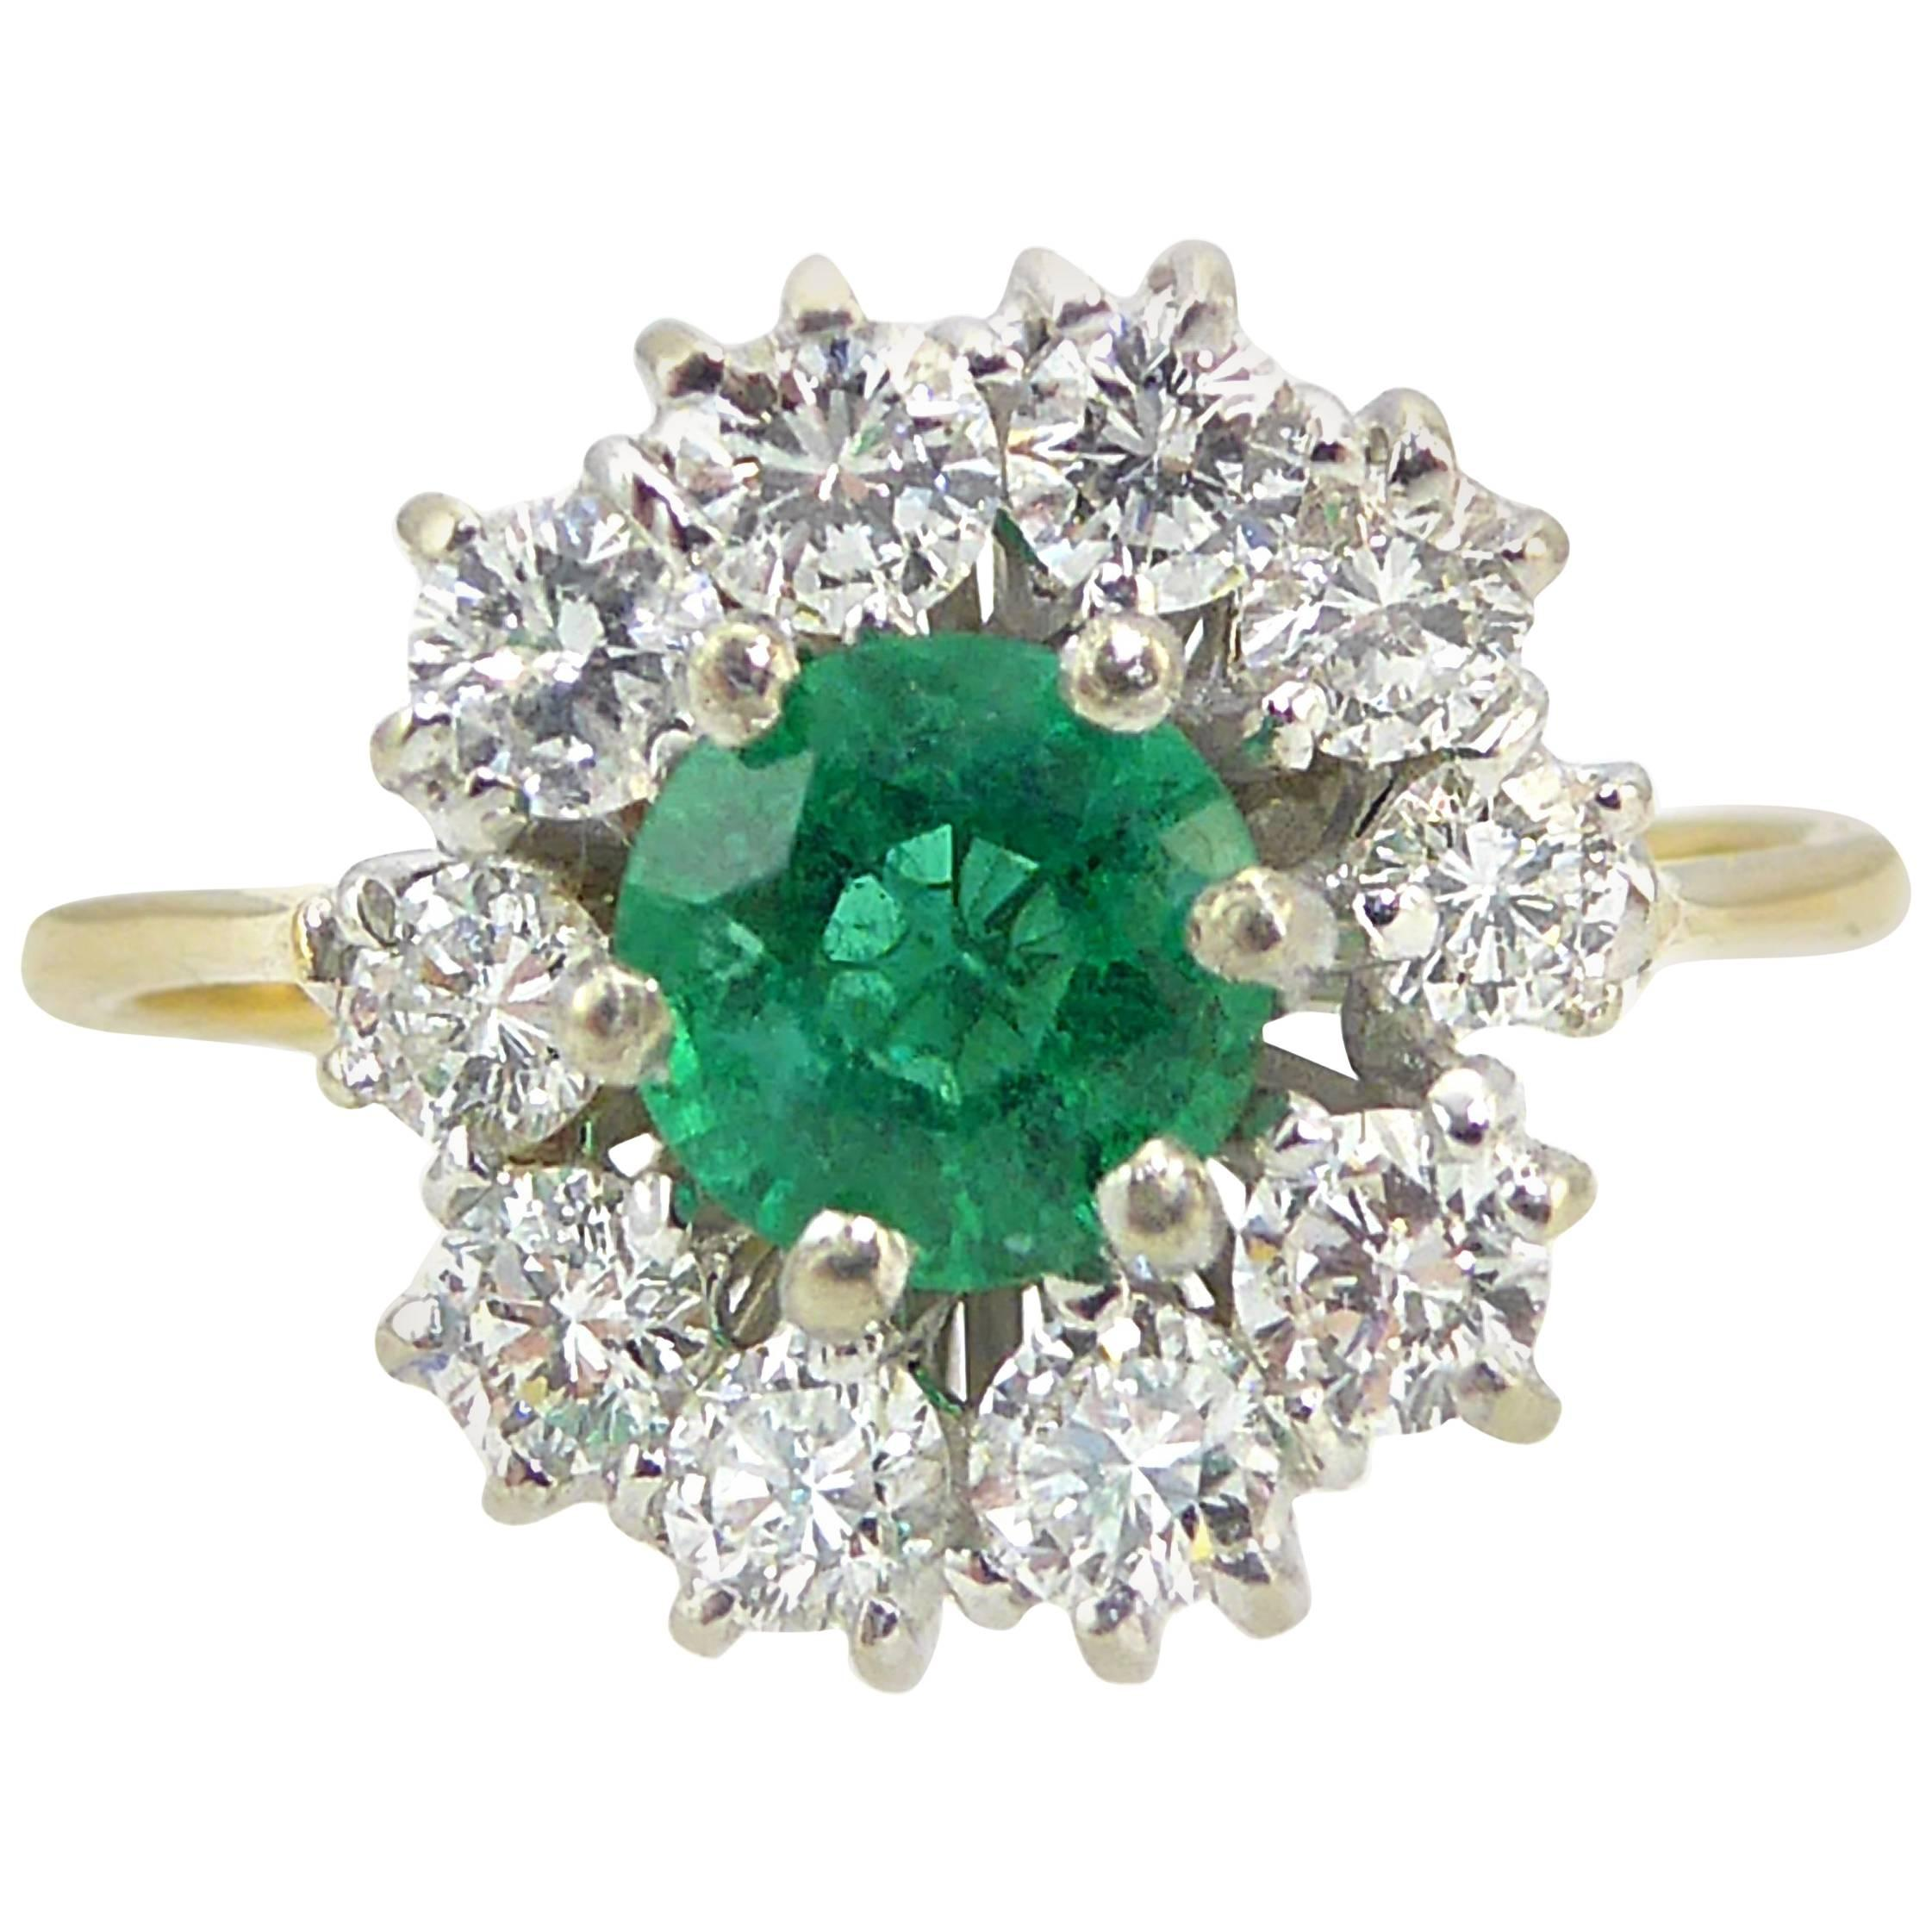 1970s Vintage Emerald Diamond Cluster Ring, Ballerina Style Cocktail Ring